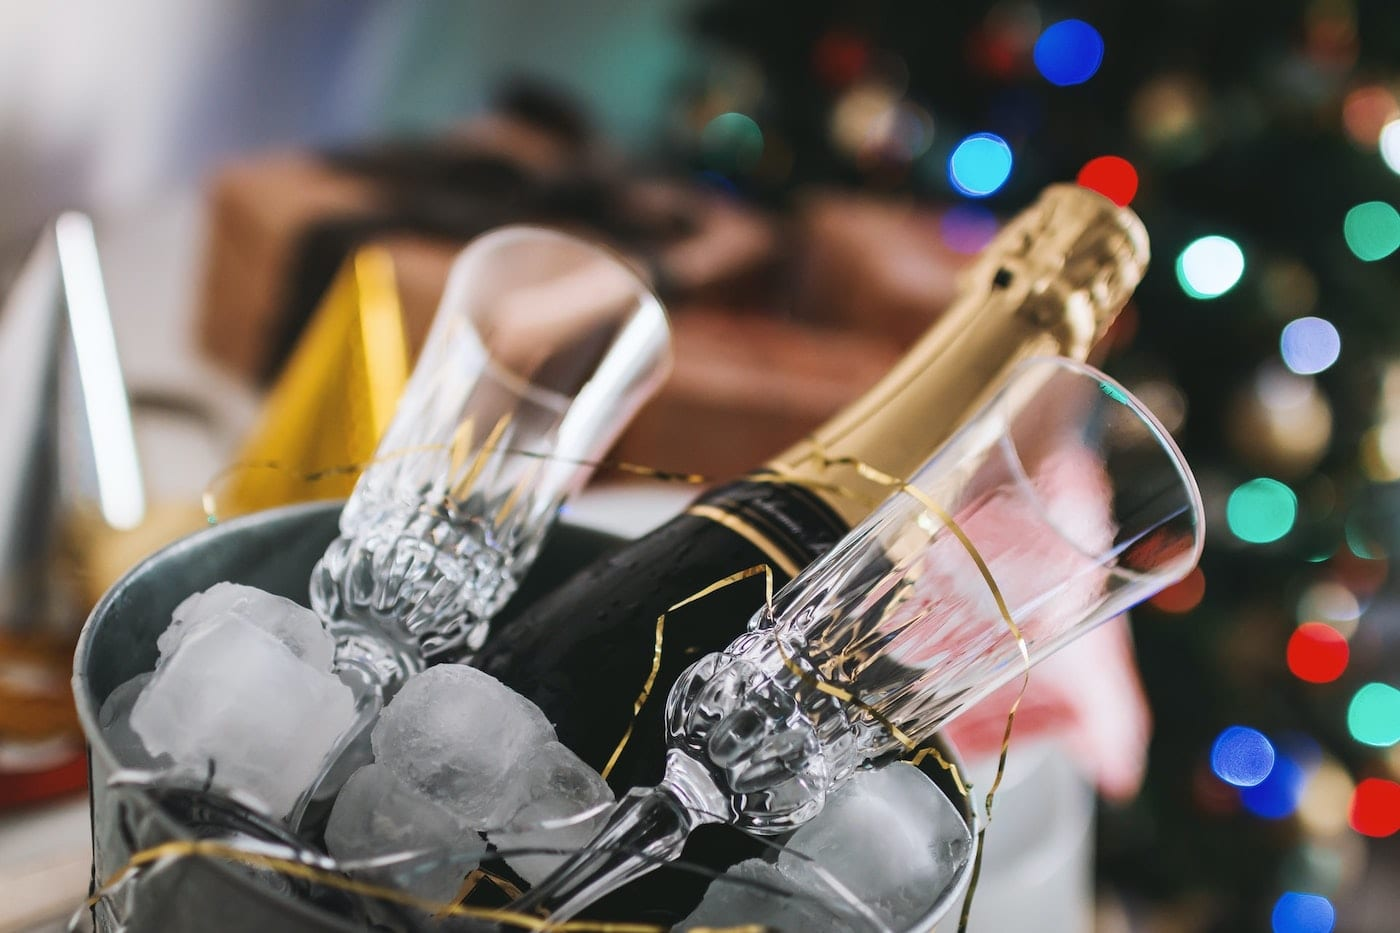 Thirsty much? Drinksdeli is giving 10 lucky readers the chance to win a case of Paul Dangin & Fils Champagne